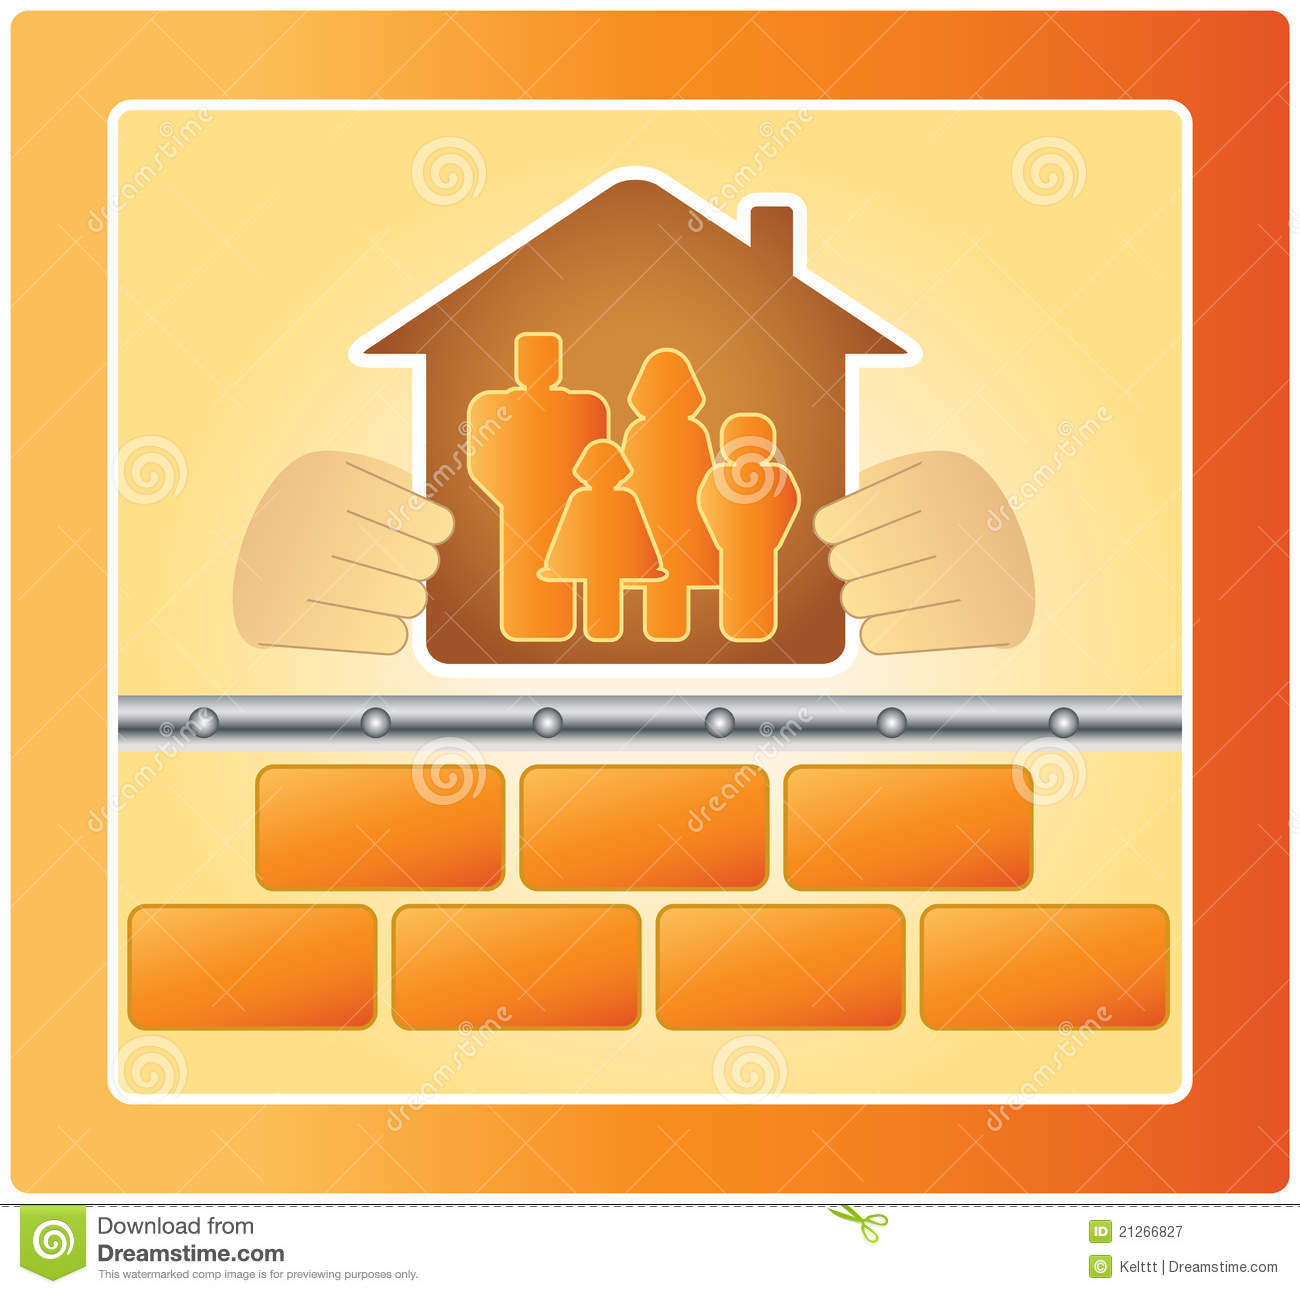 warm hearts & homes - housing bc PNG image with transparent background png  - Free PNG Images in 2020 | Warm heart, Free png, Png images